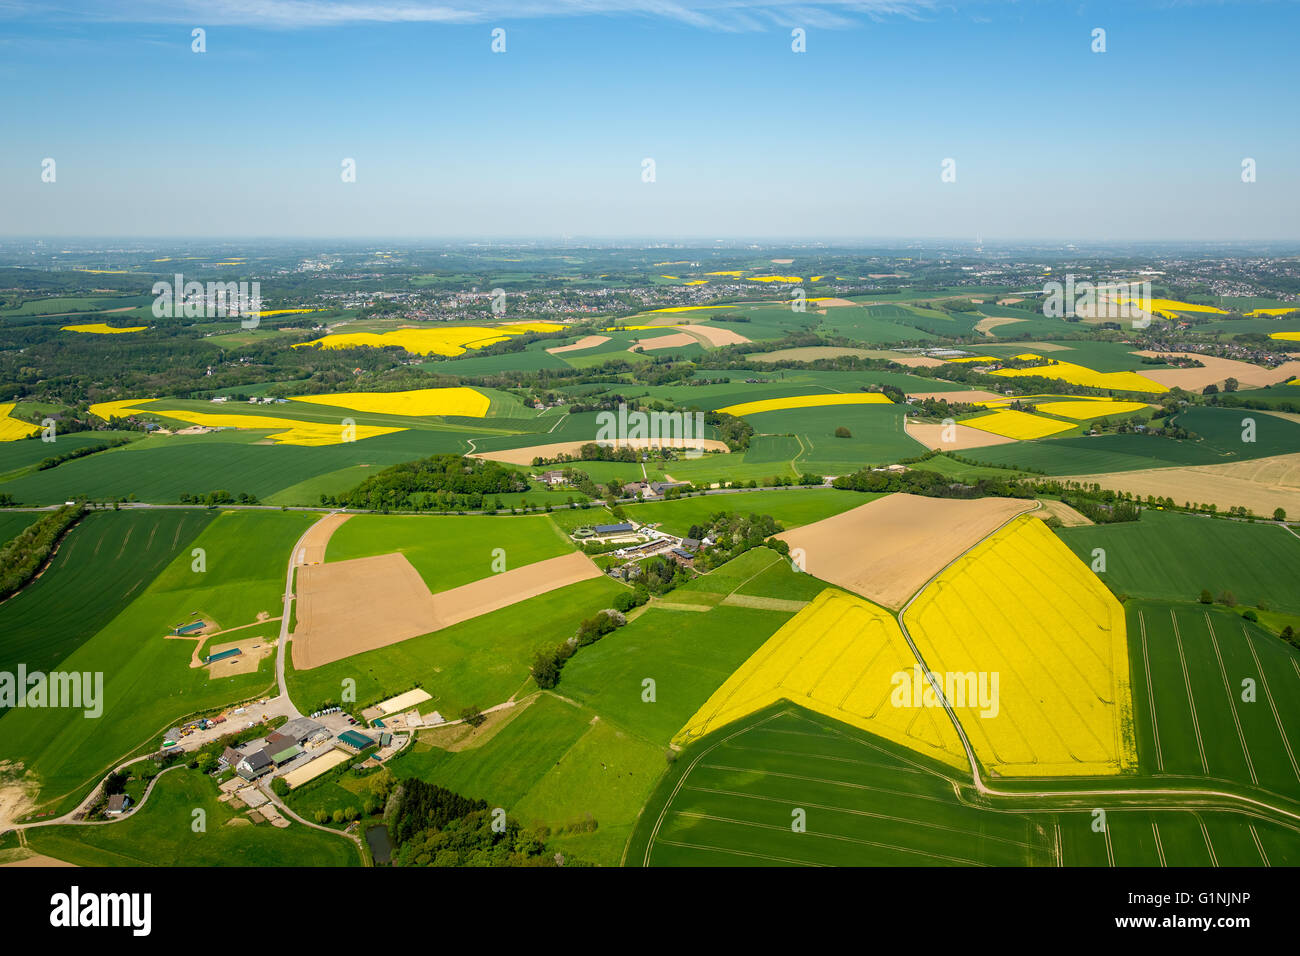 Surrounded By Canoloa Feilds Quotes: Glider Airfield Stock Photos & Glider Airfield Stock